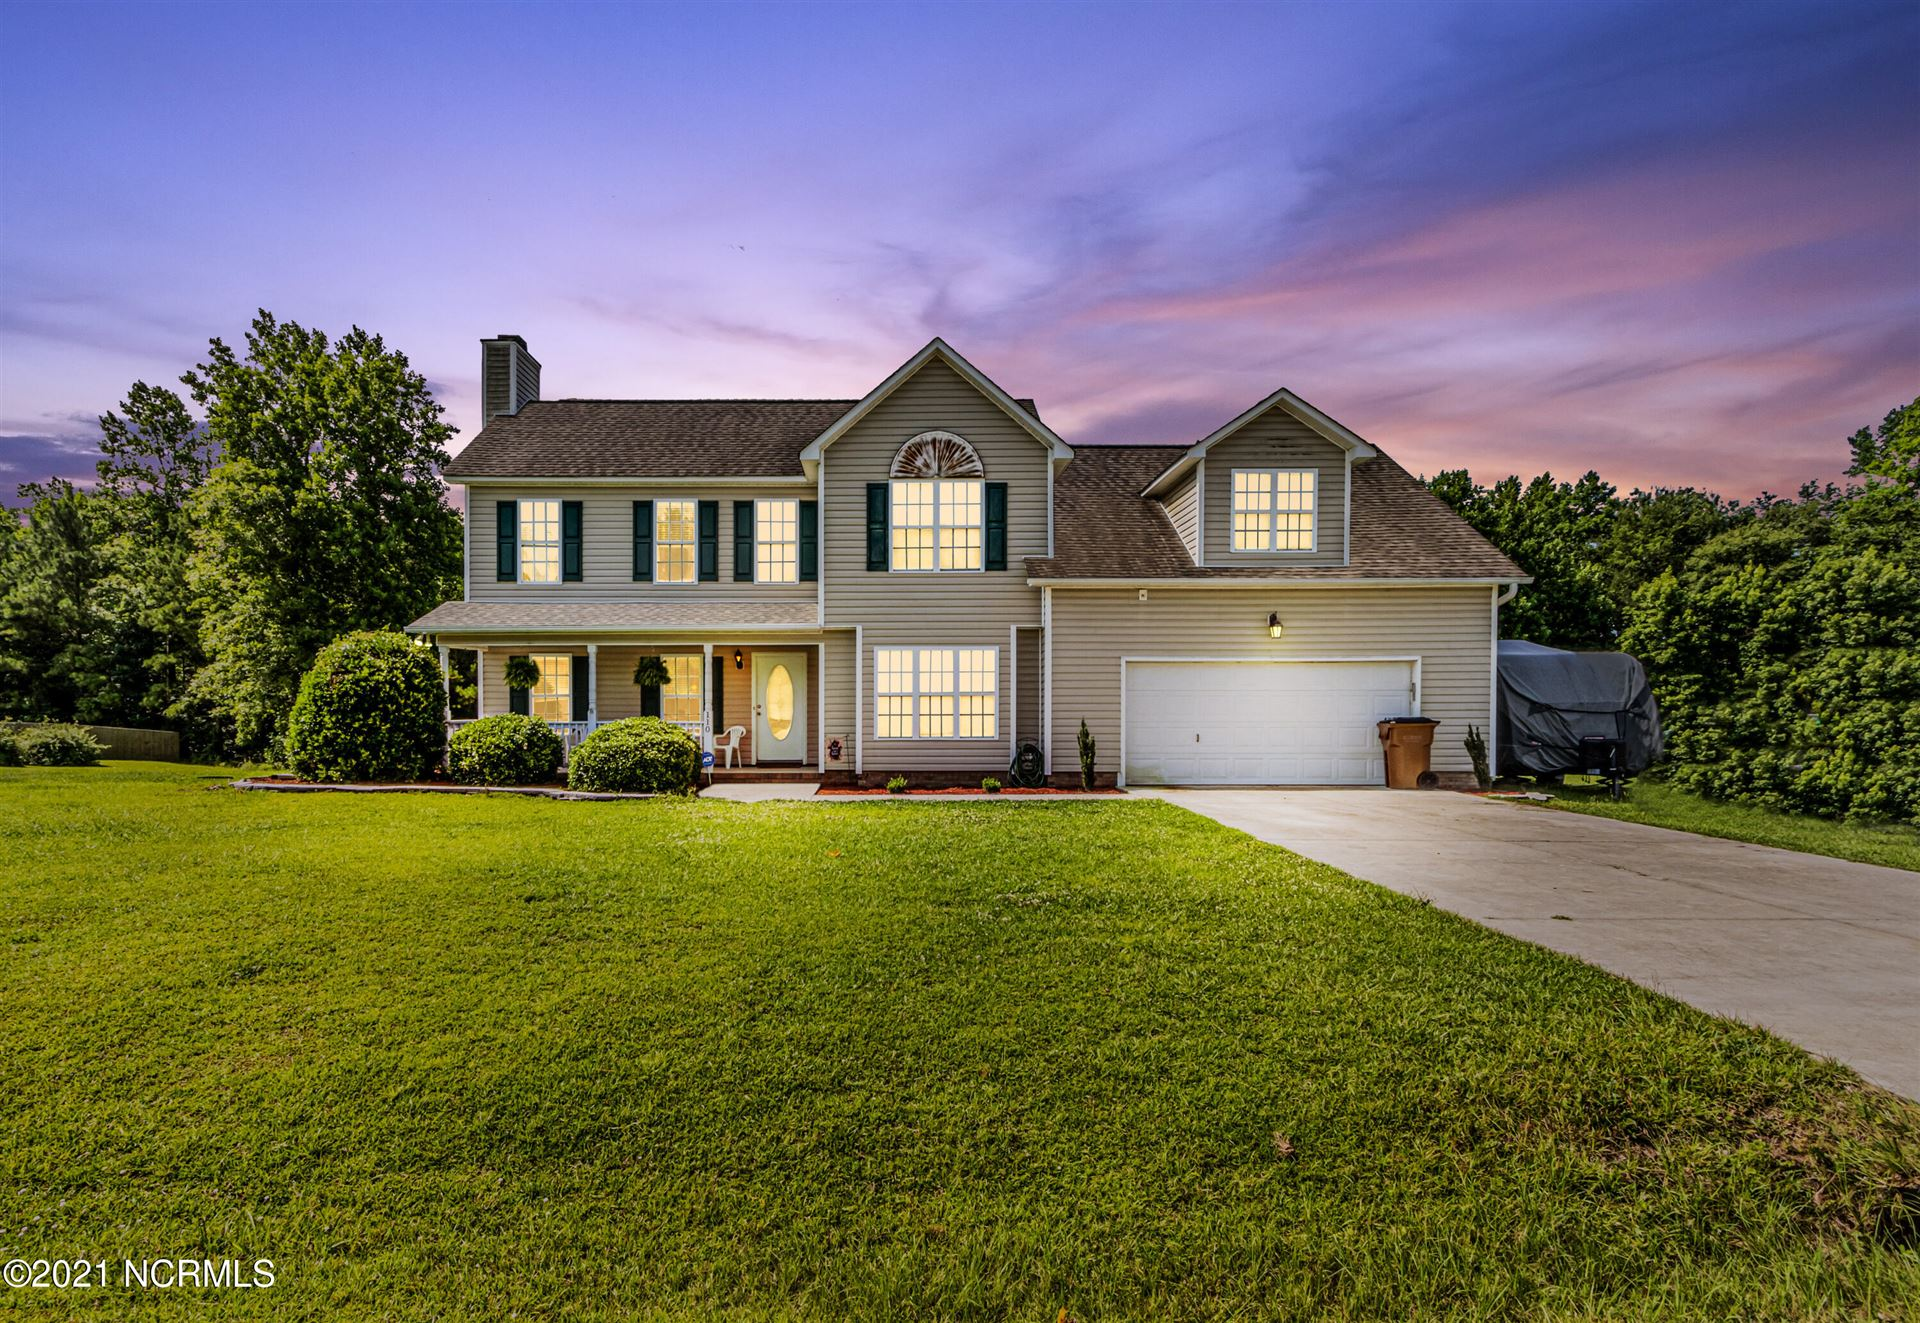 Photo for 110 Mendover Drive, Jacksonville, NC 28546 (MLS # 100280323)